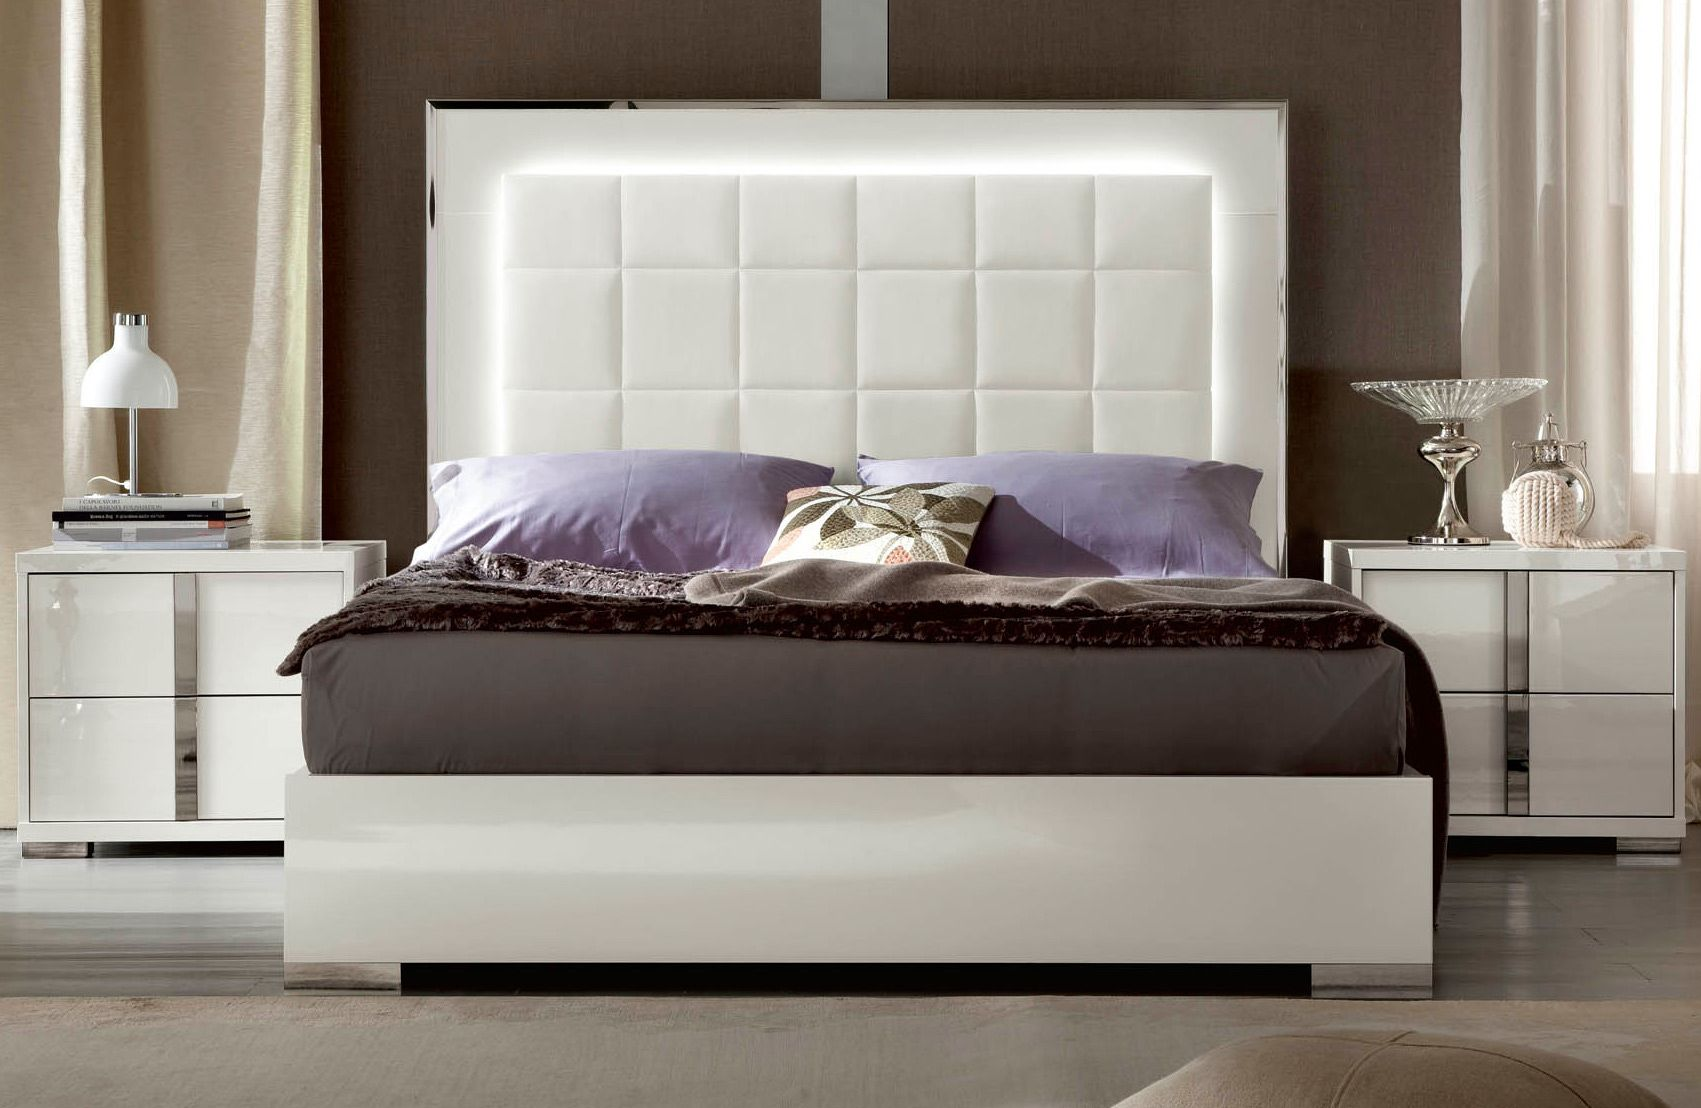 The Bella Bianca Bed Made In Italy Puts A Contemporary Twist